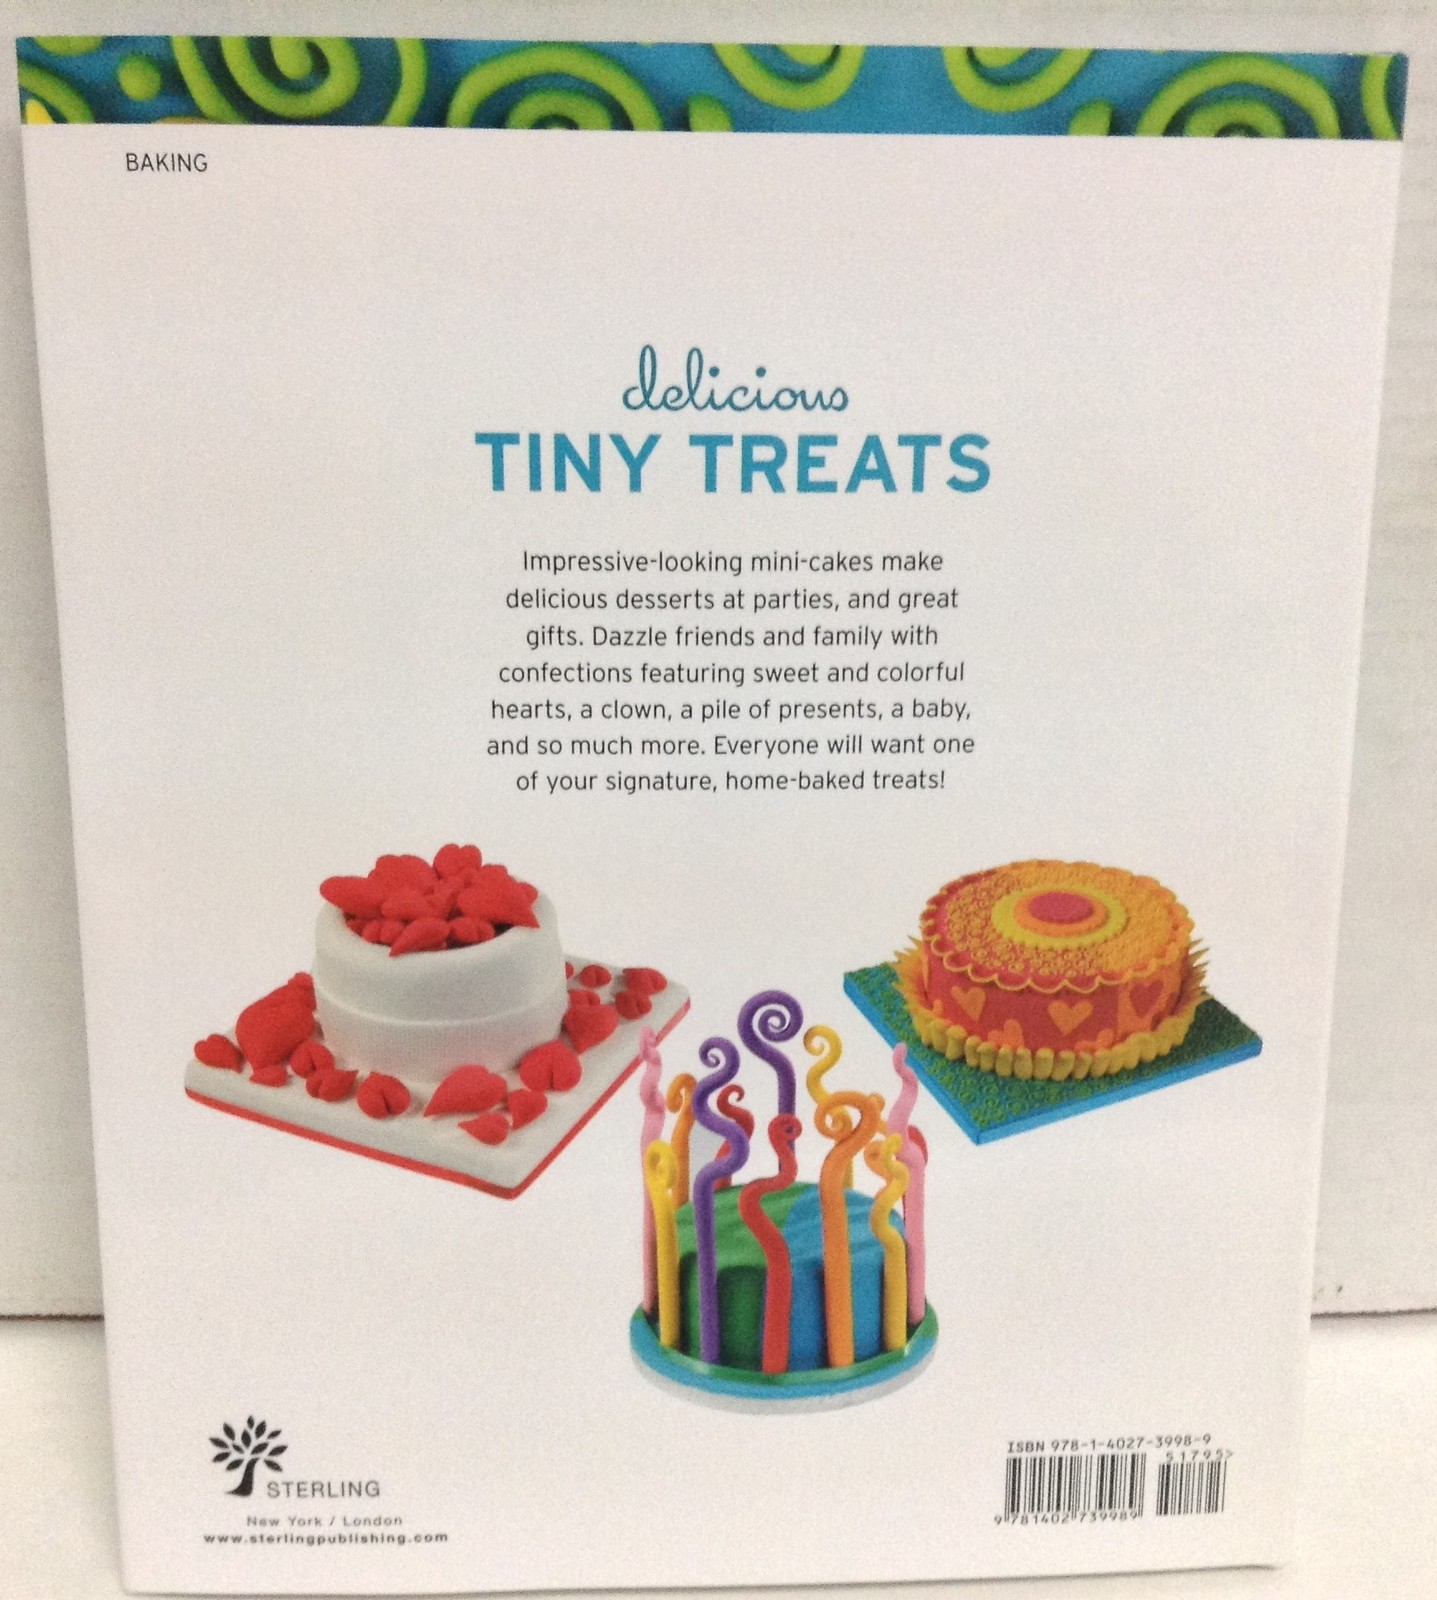 Mini Cakes Cook Book Delicious Tiny Treats Brand NEW by Noga Hitron